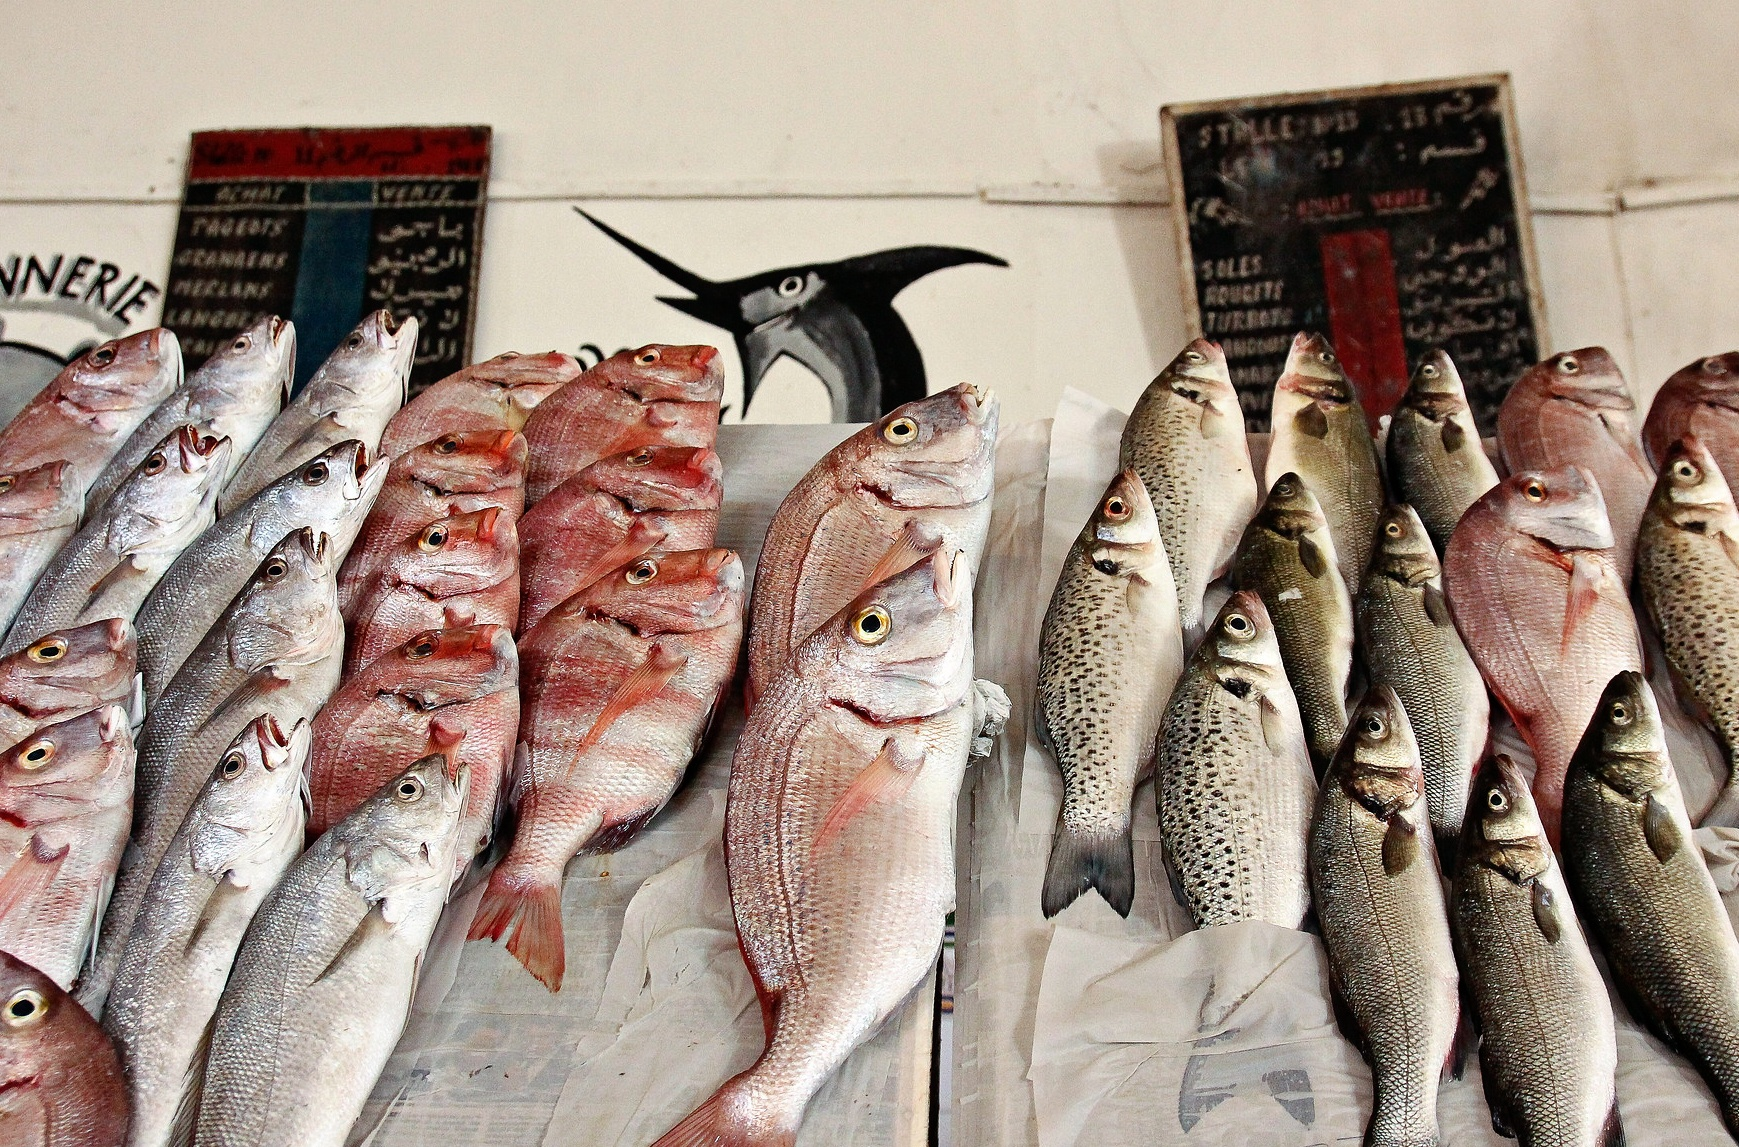 Casablanca fish by Magalie Abbe on Flickr